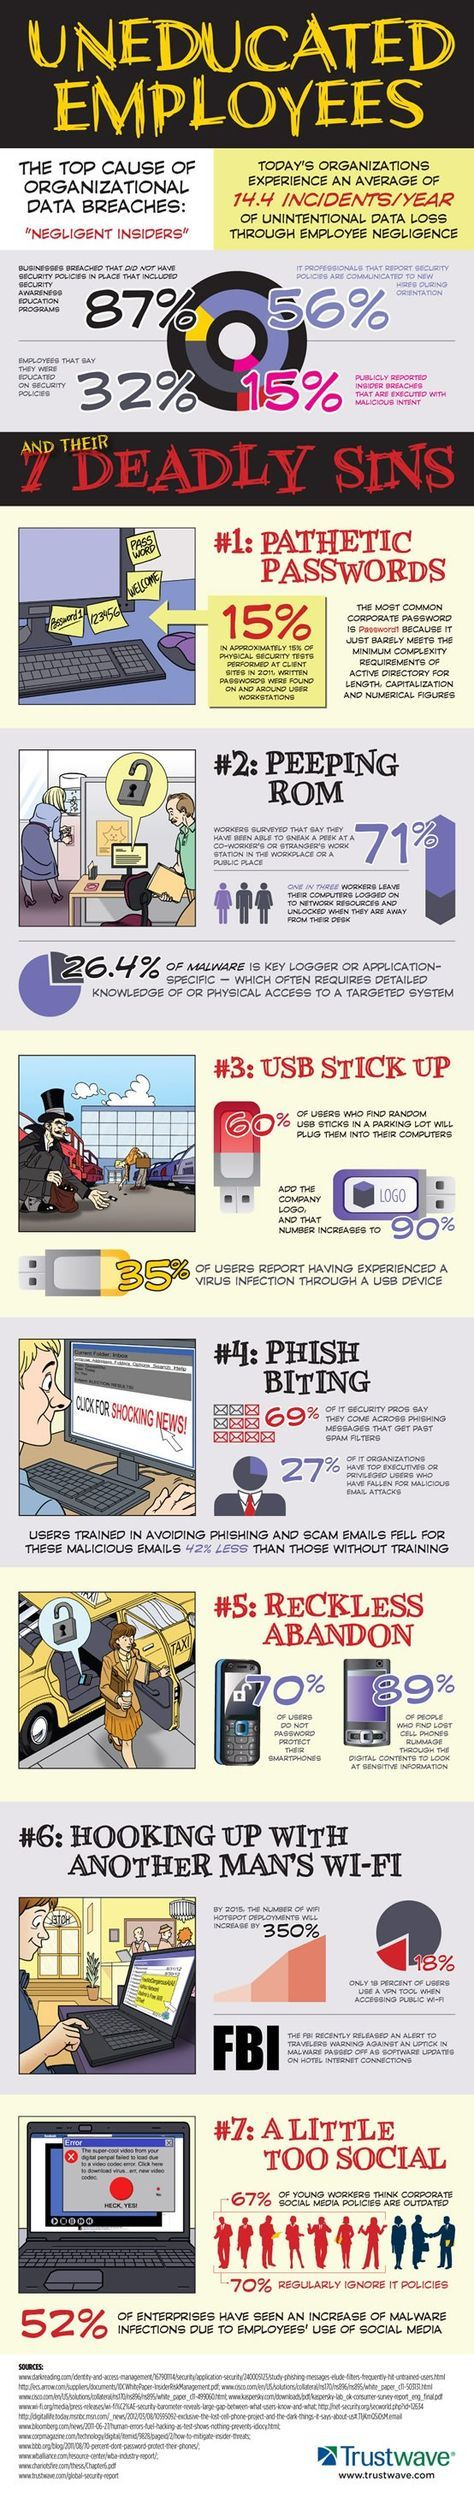 Educate employees about BYOD issues/security